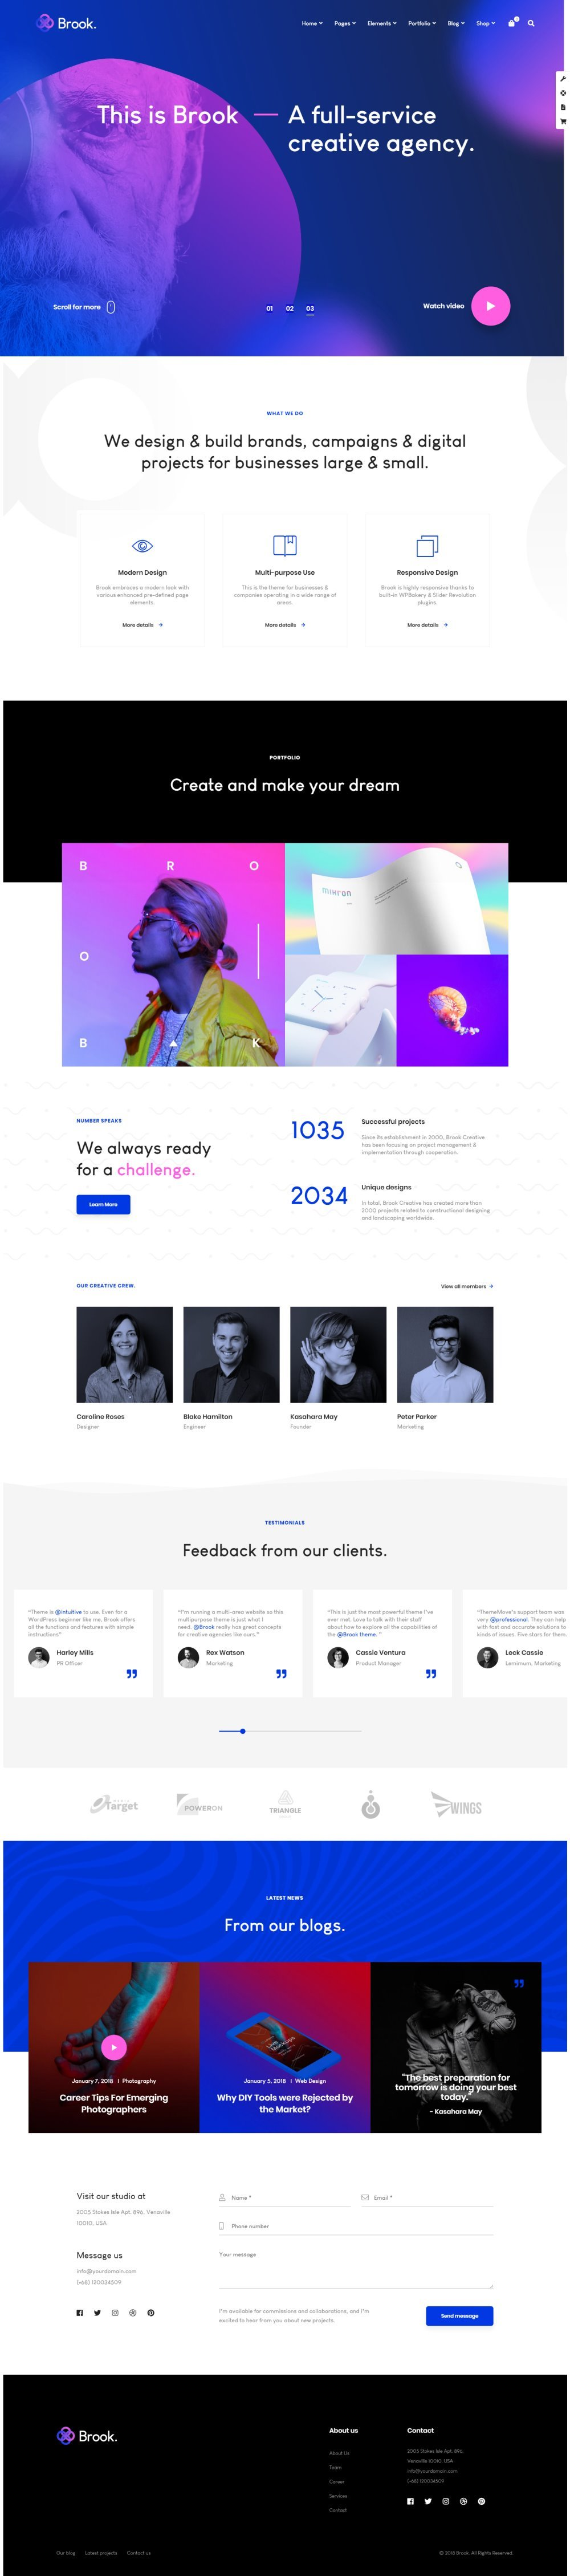 Best-WordPress-Themes-and-Web-Design-for-Creatives-002